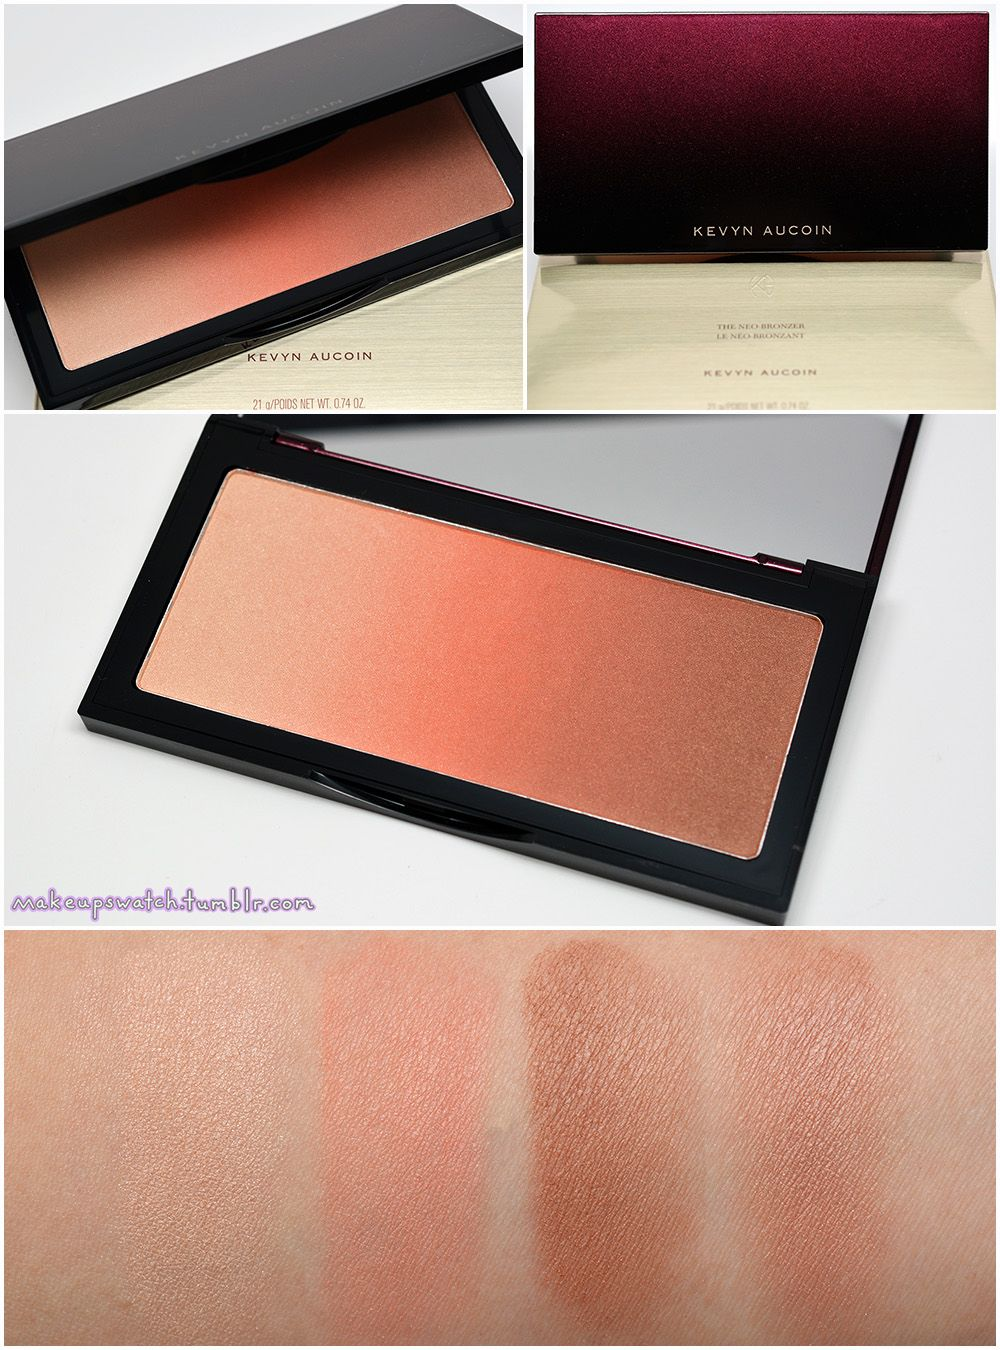 Kevyn Aucoin The Neo Bronzer In Siena Bronzer Aesthetic Makeup Beauty Makeup